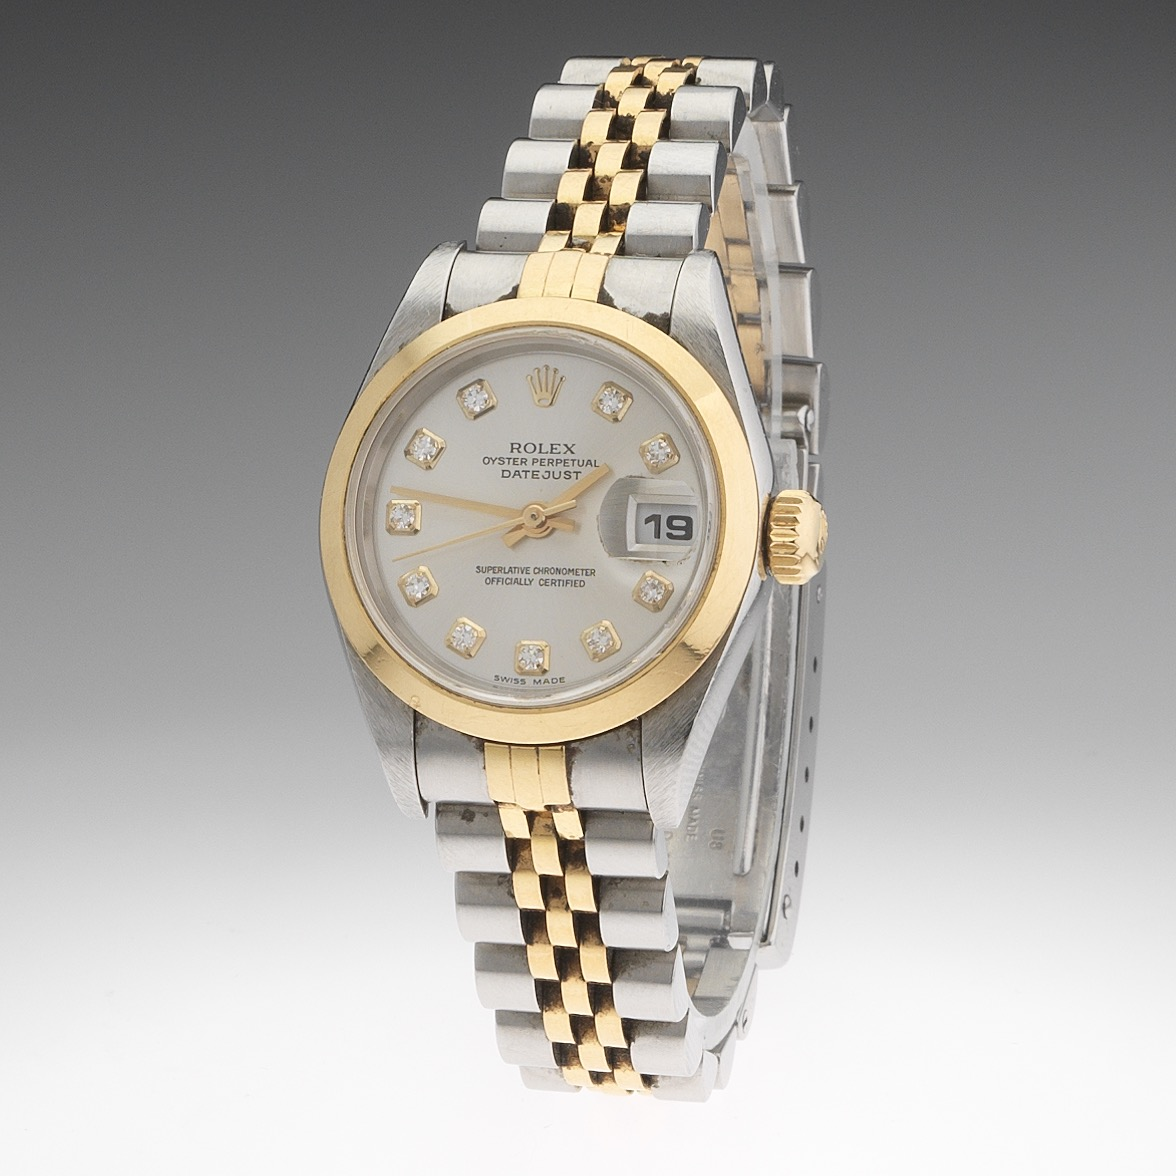 Rolex Oyster Perpetual Datejust 18k Gold